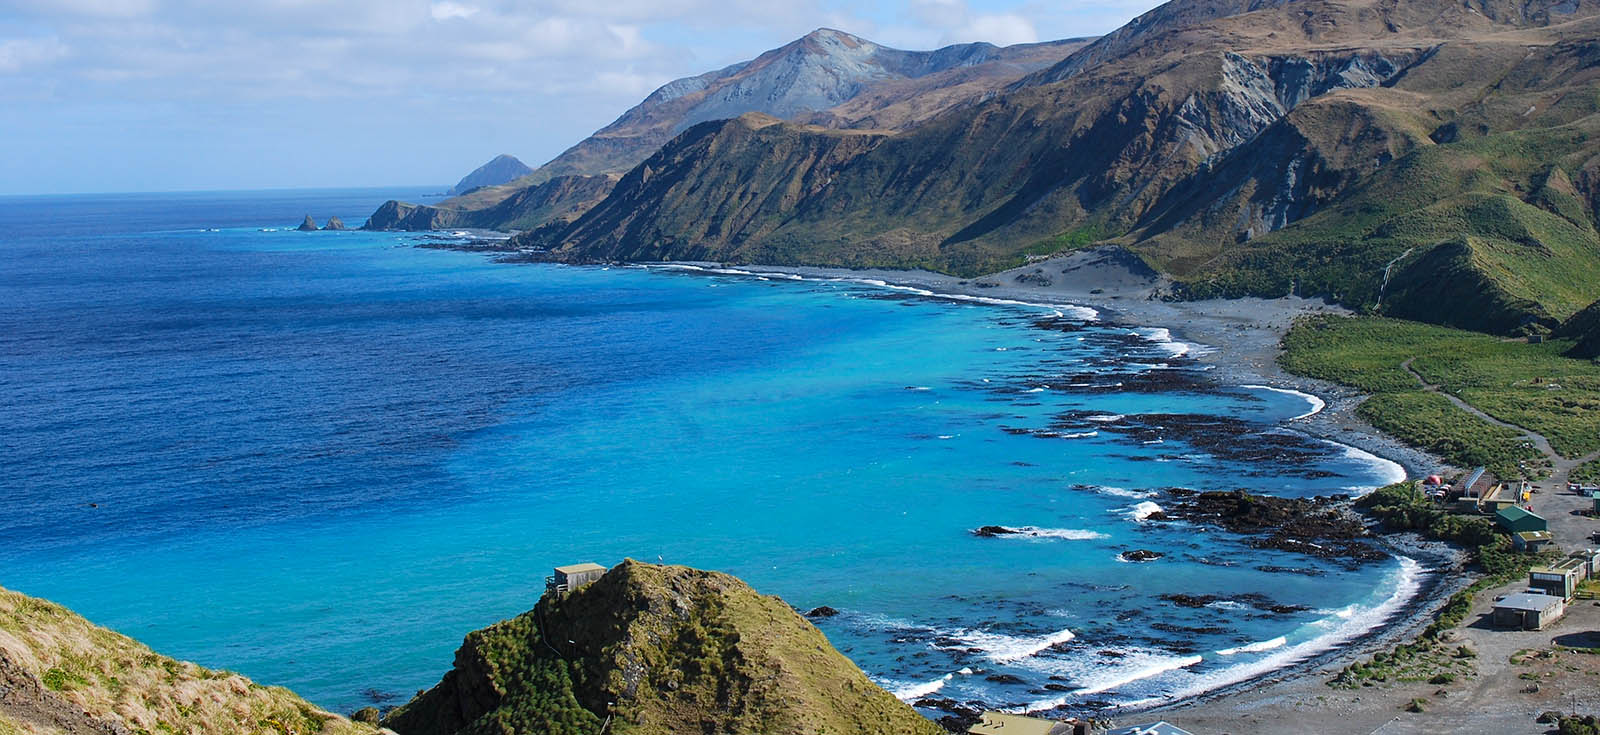 View of Buckles Bay on Macquarie Island from Wireless Hill